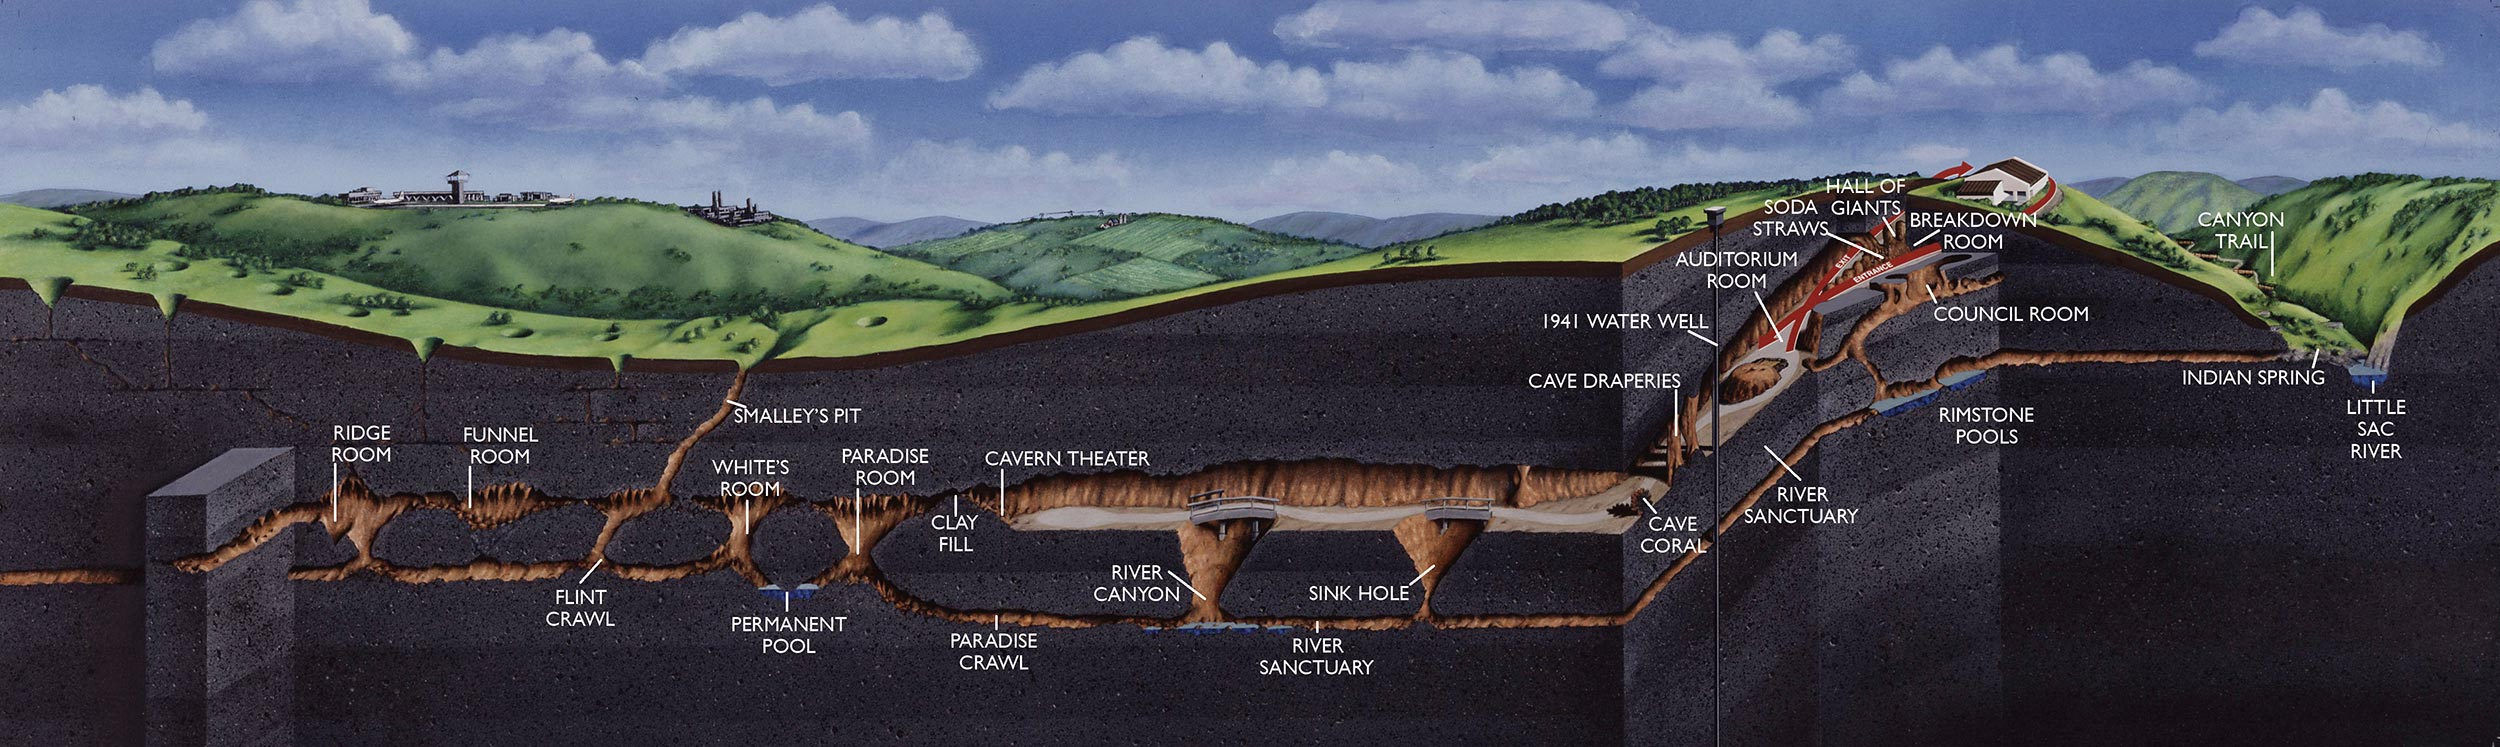 Fantastic Caverns Missouri Cave Map